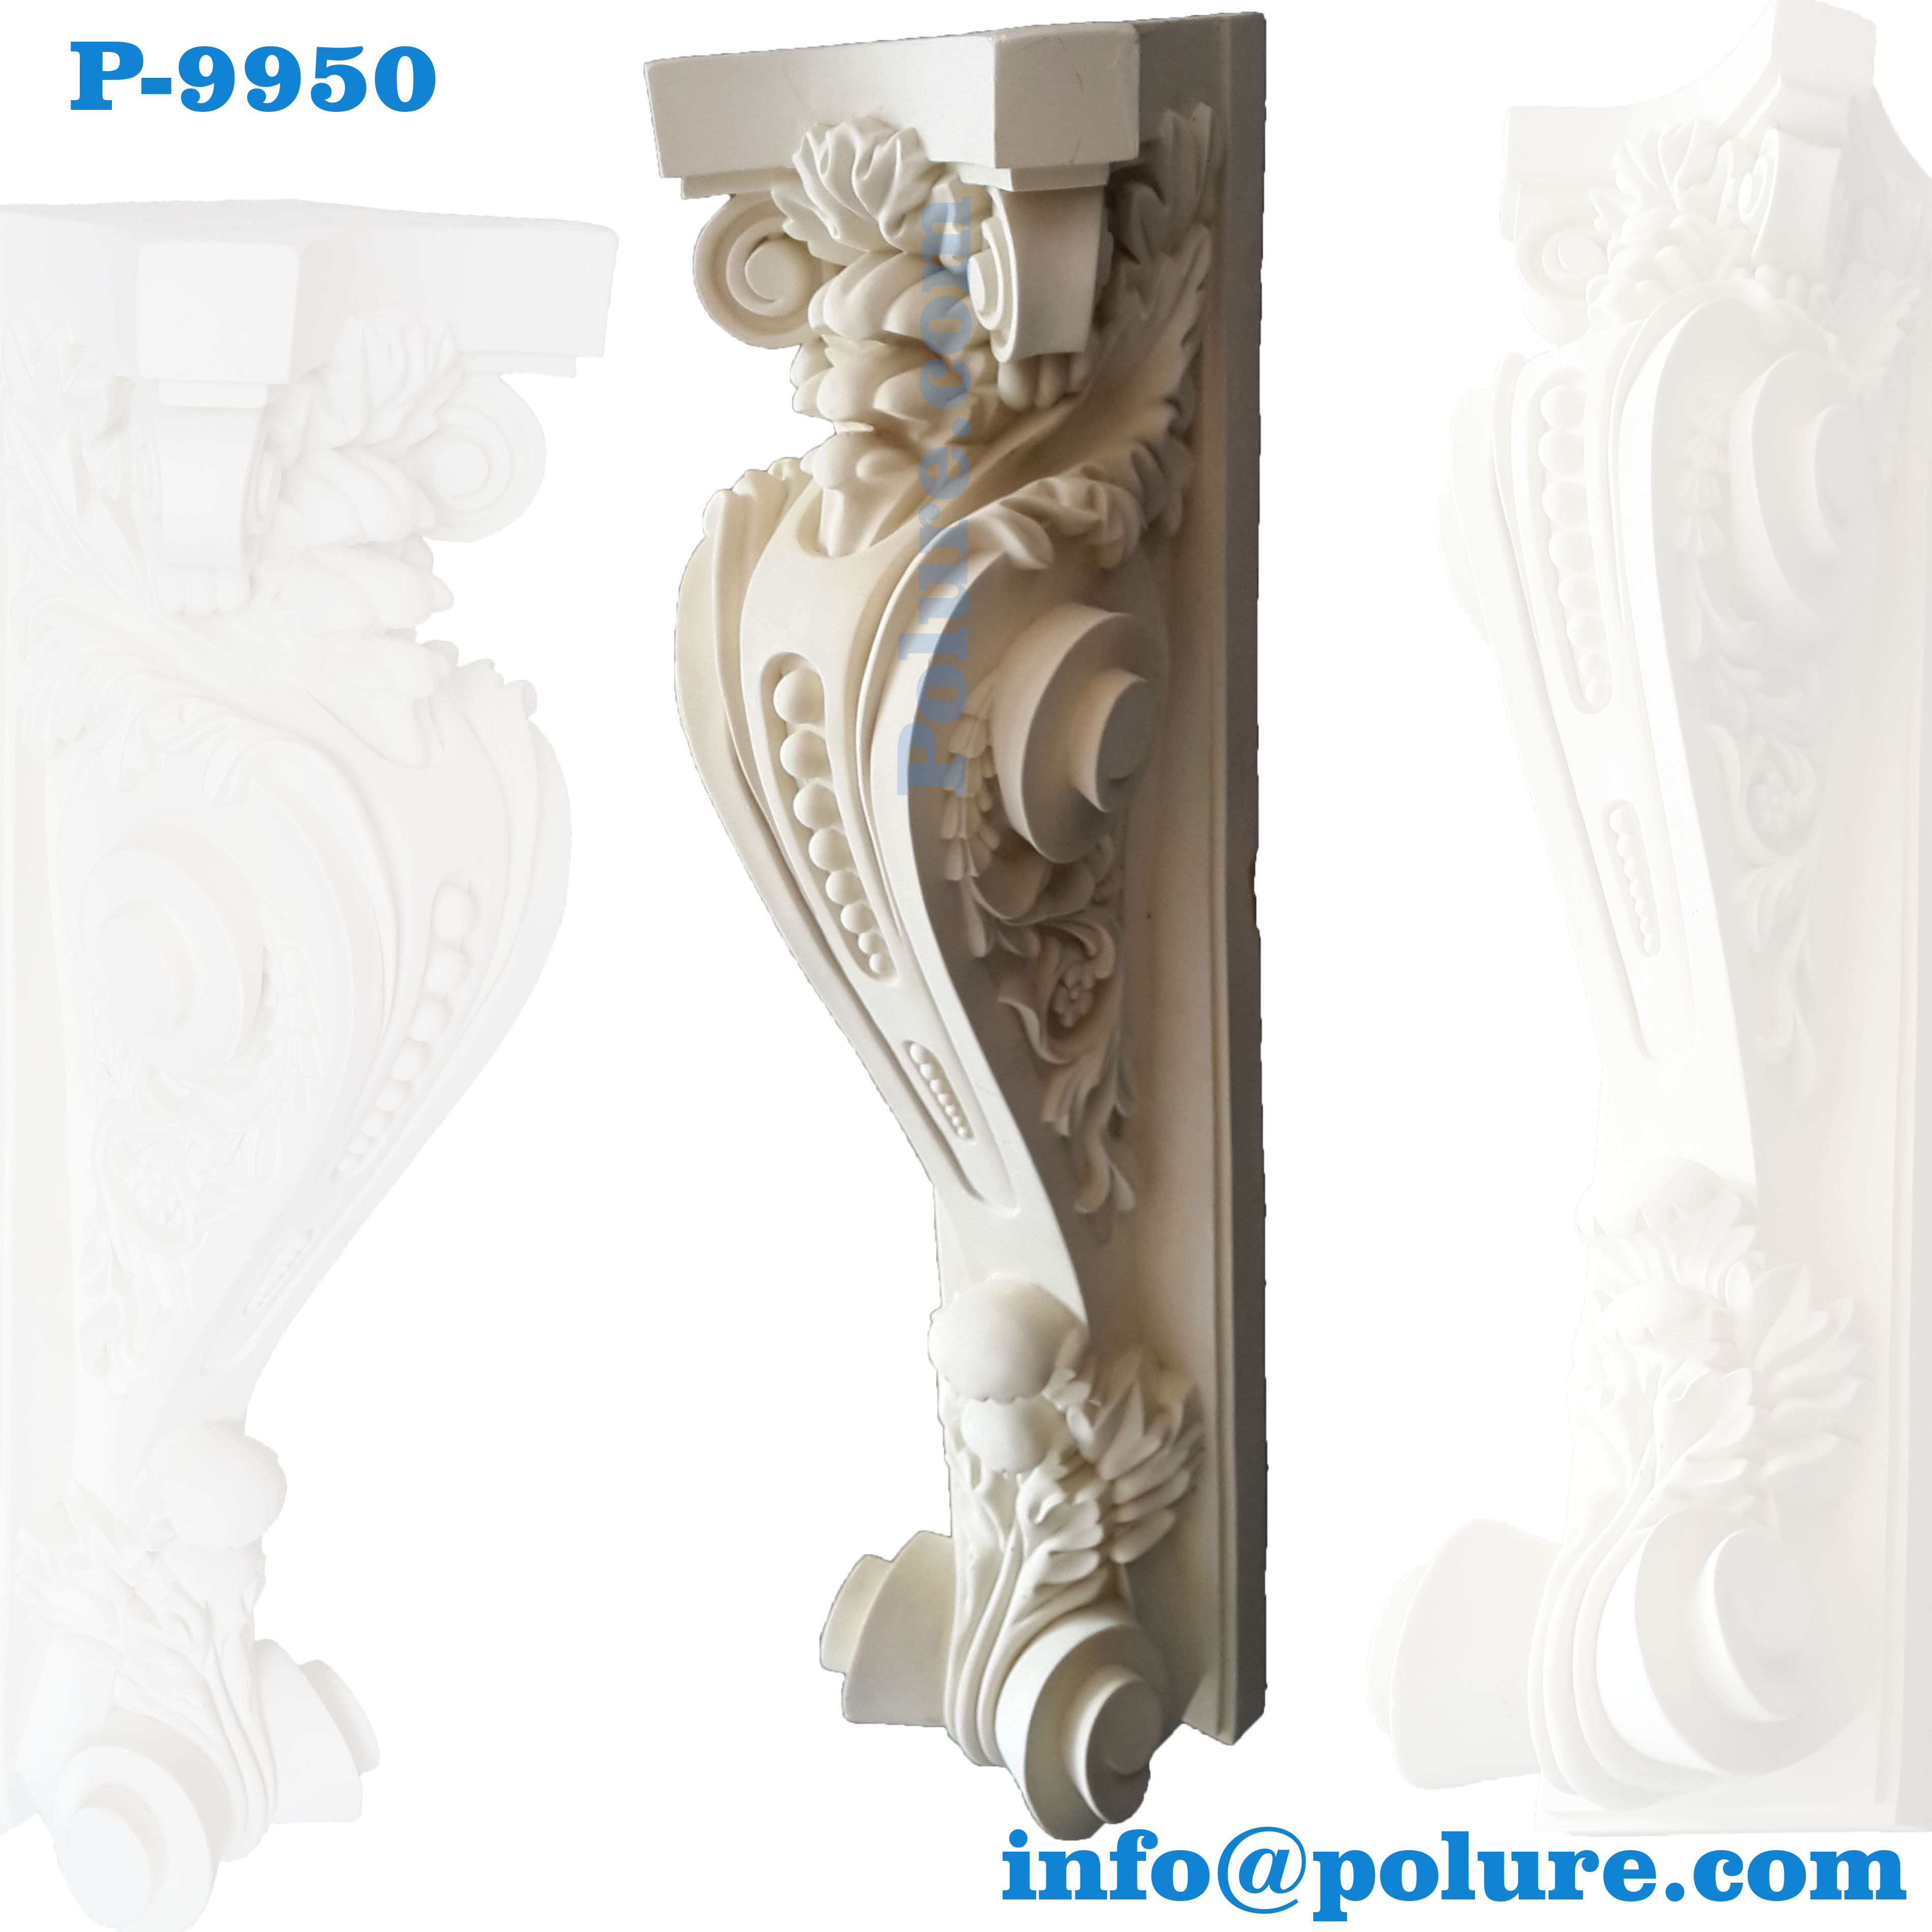 P-9950-polyurethane-classic-decorative-corbel-moulding-interior-exterior-decoration-pu (10)